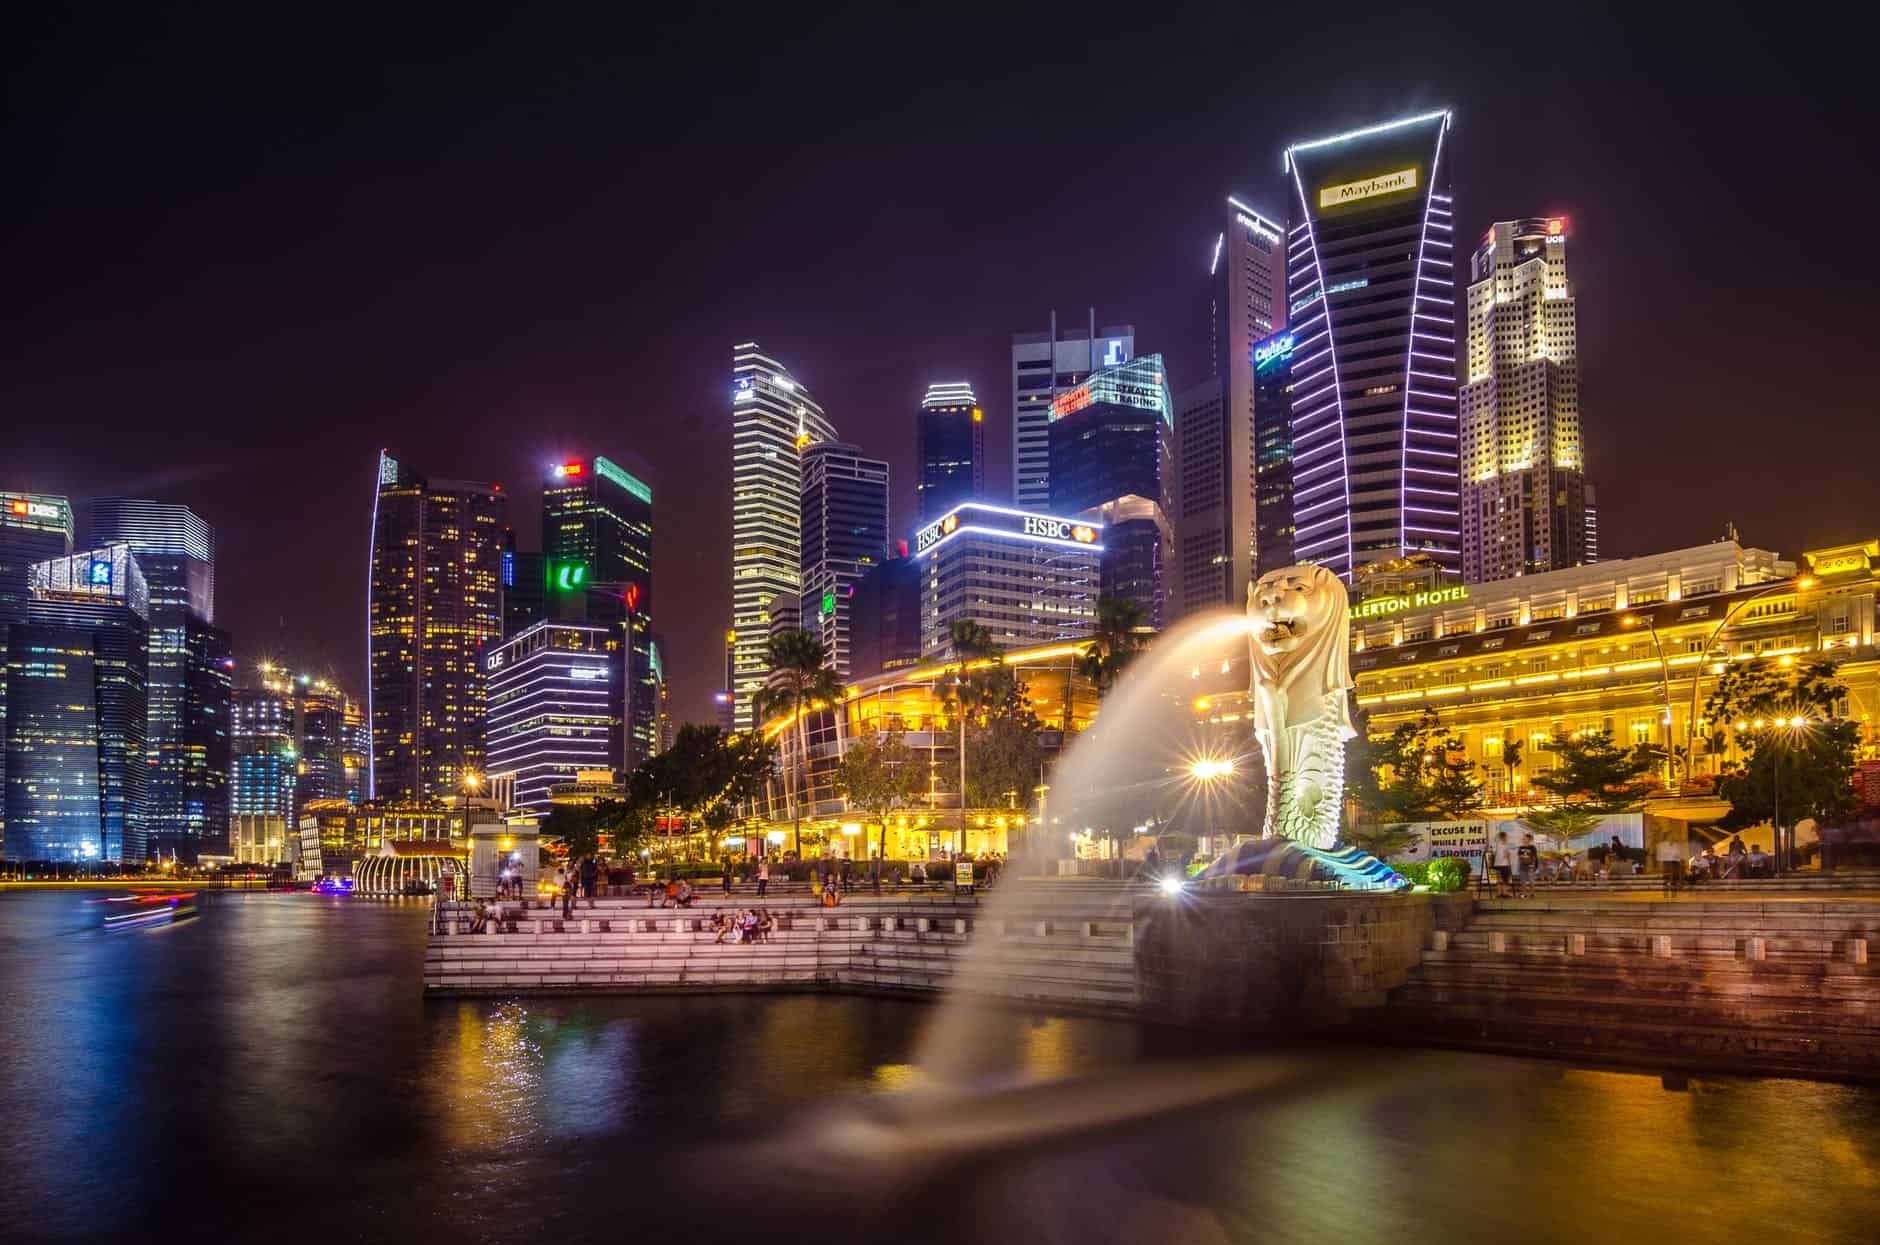 Singapore is one of the top travel destinations for people with disabilities